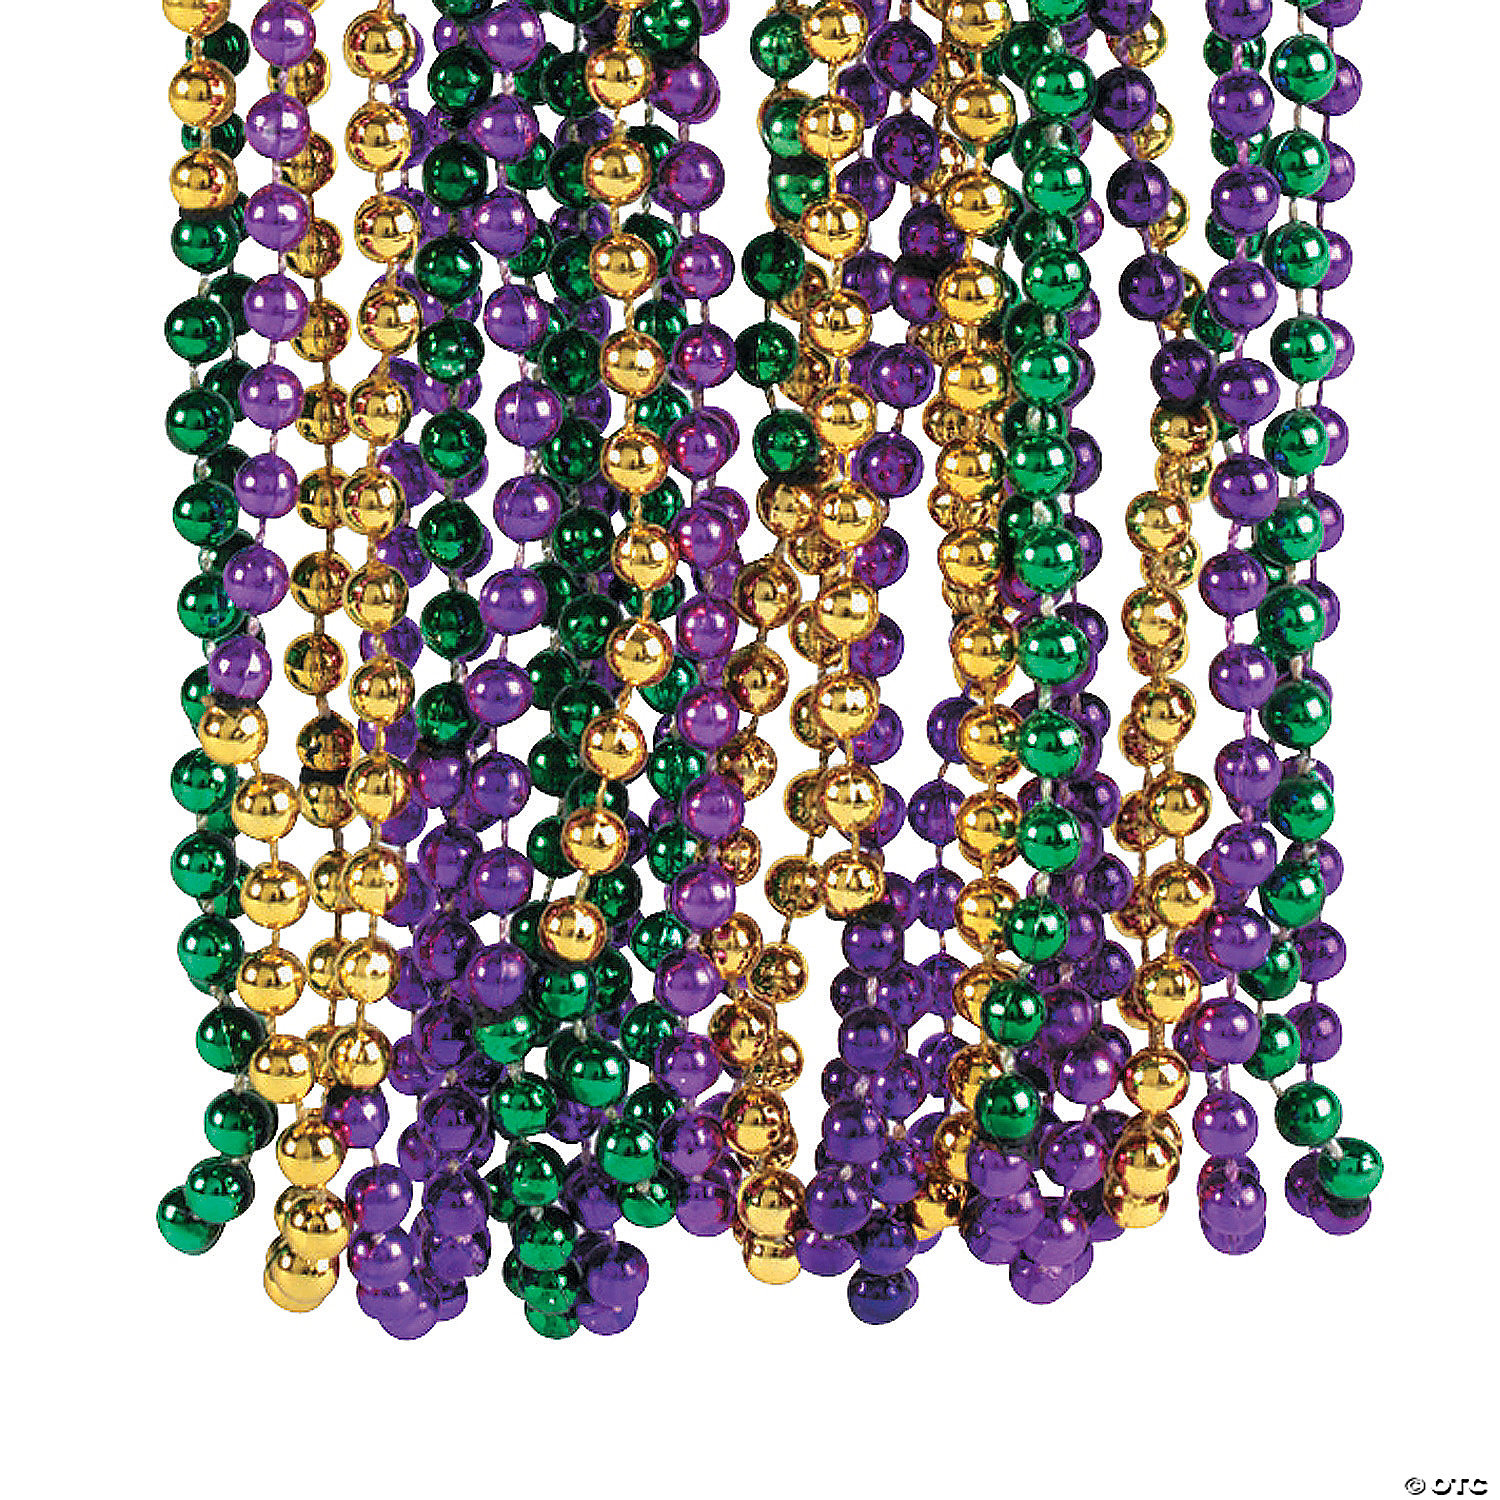 mask background mardi colorful carnival stock with a photo gras beads photos of image group